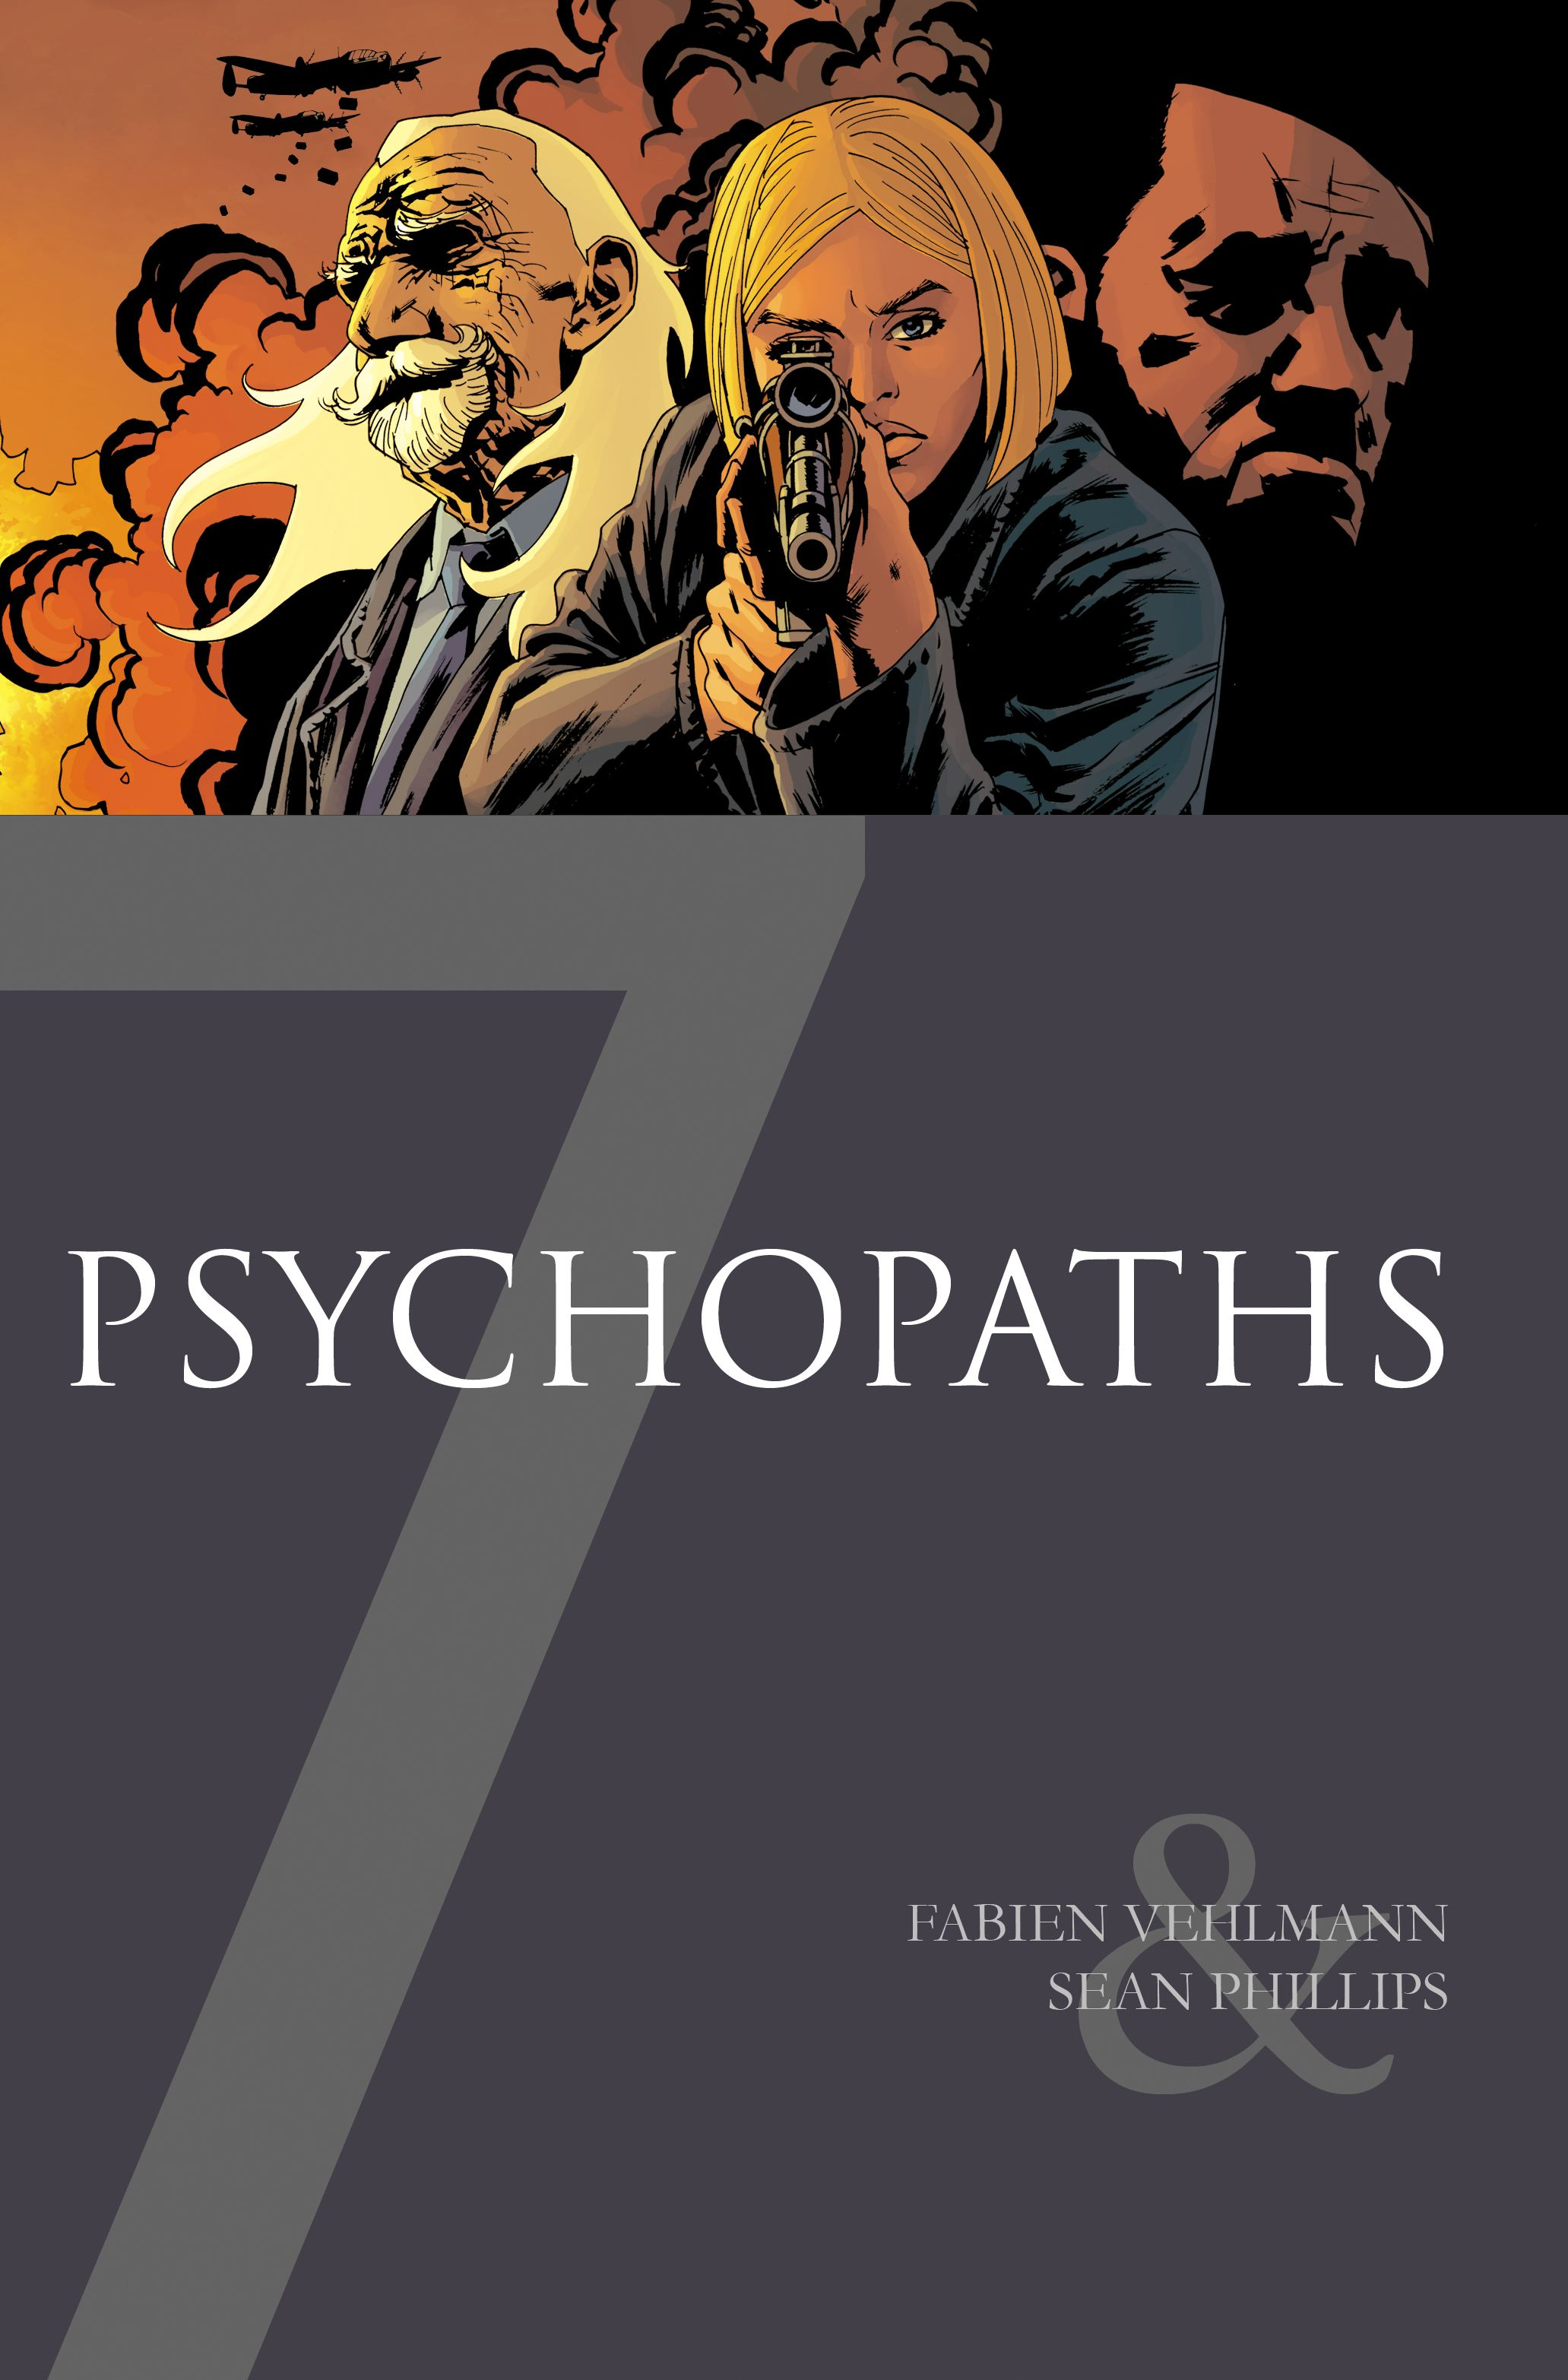 7-psychopaths-9781608860326_hr